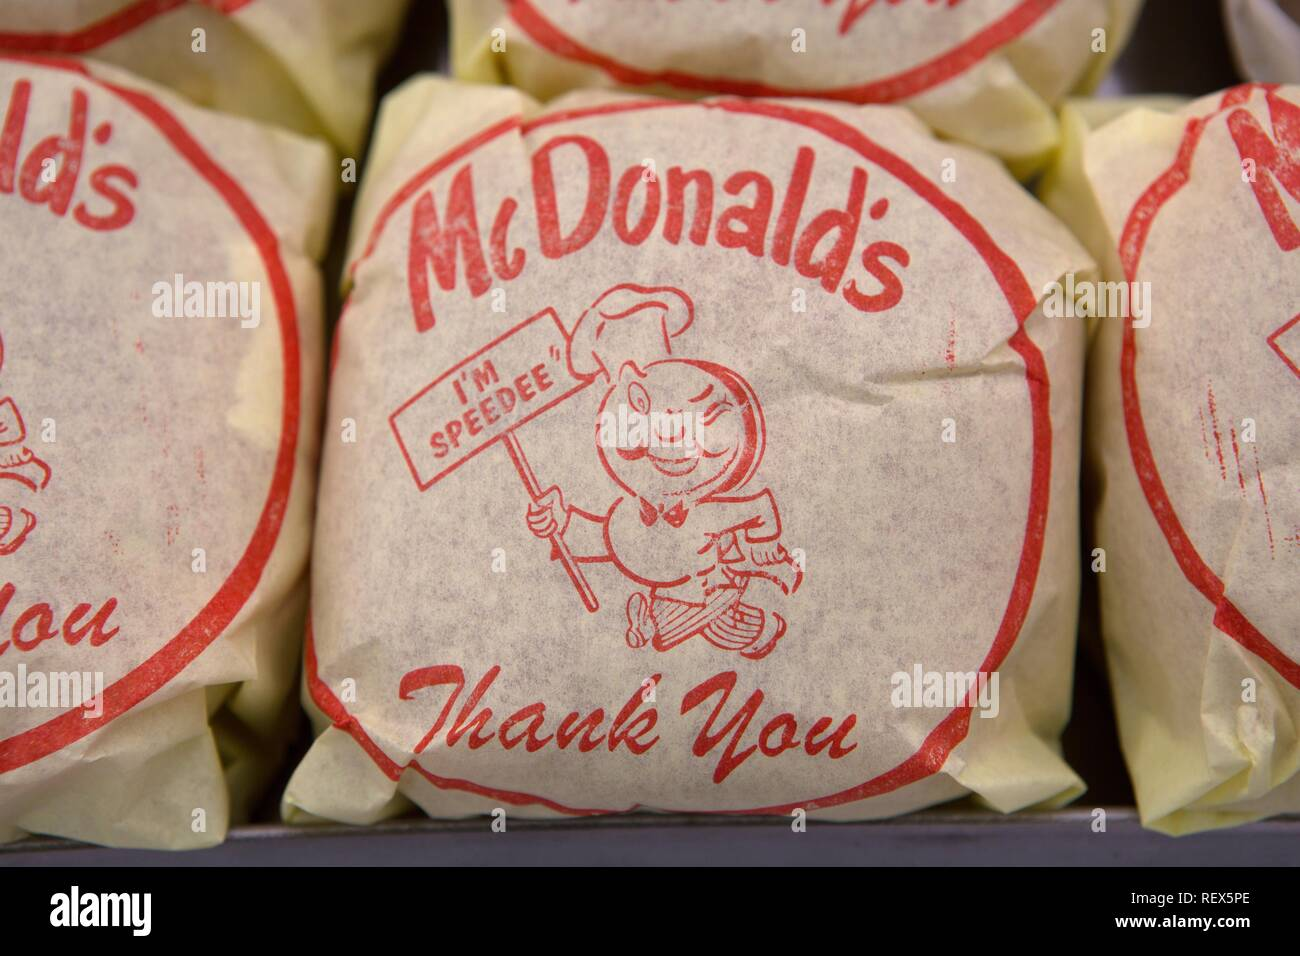 MCDONALD'S BURGERS THE FOUNDER (2016) - Stock Image